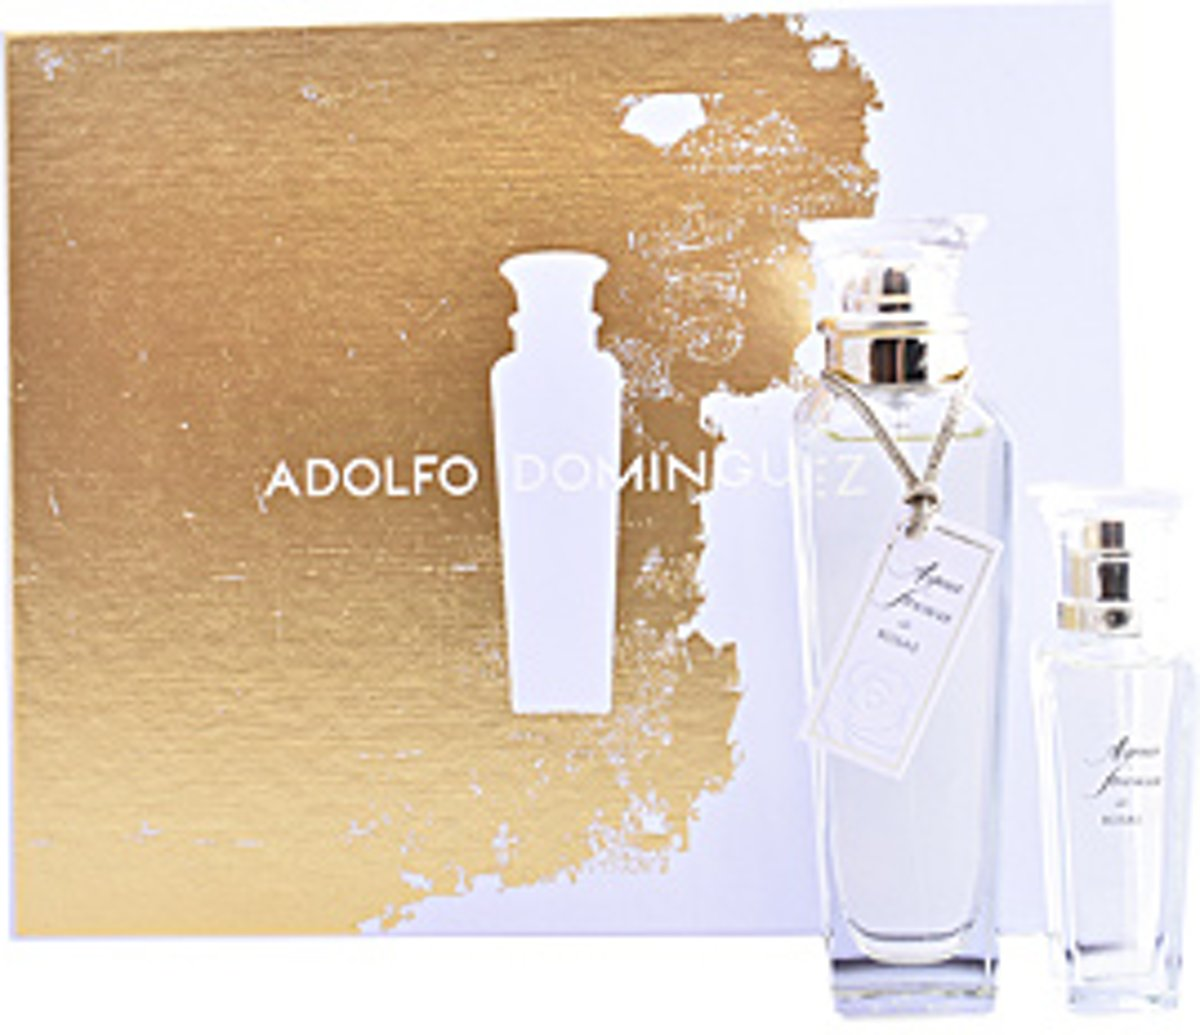 Adolfo Dominguez AGUA FRESCA DE ROSAS LOTE edt vapo 120 ml + edt vapo 30 ml